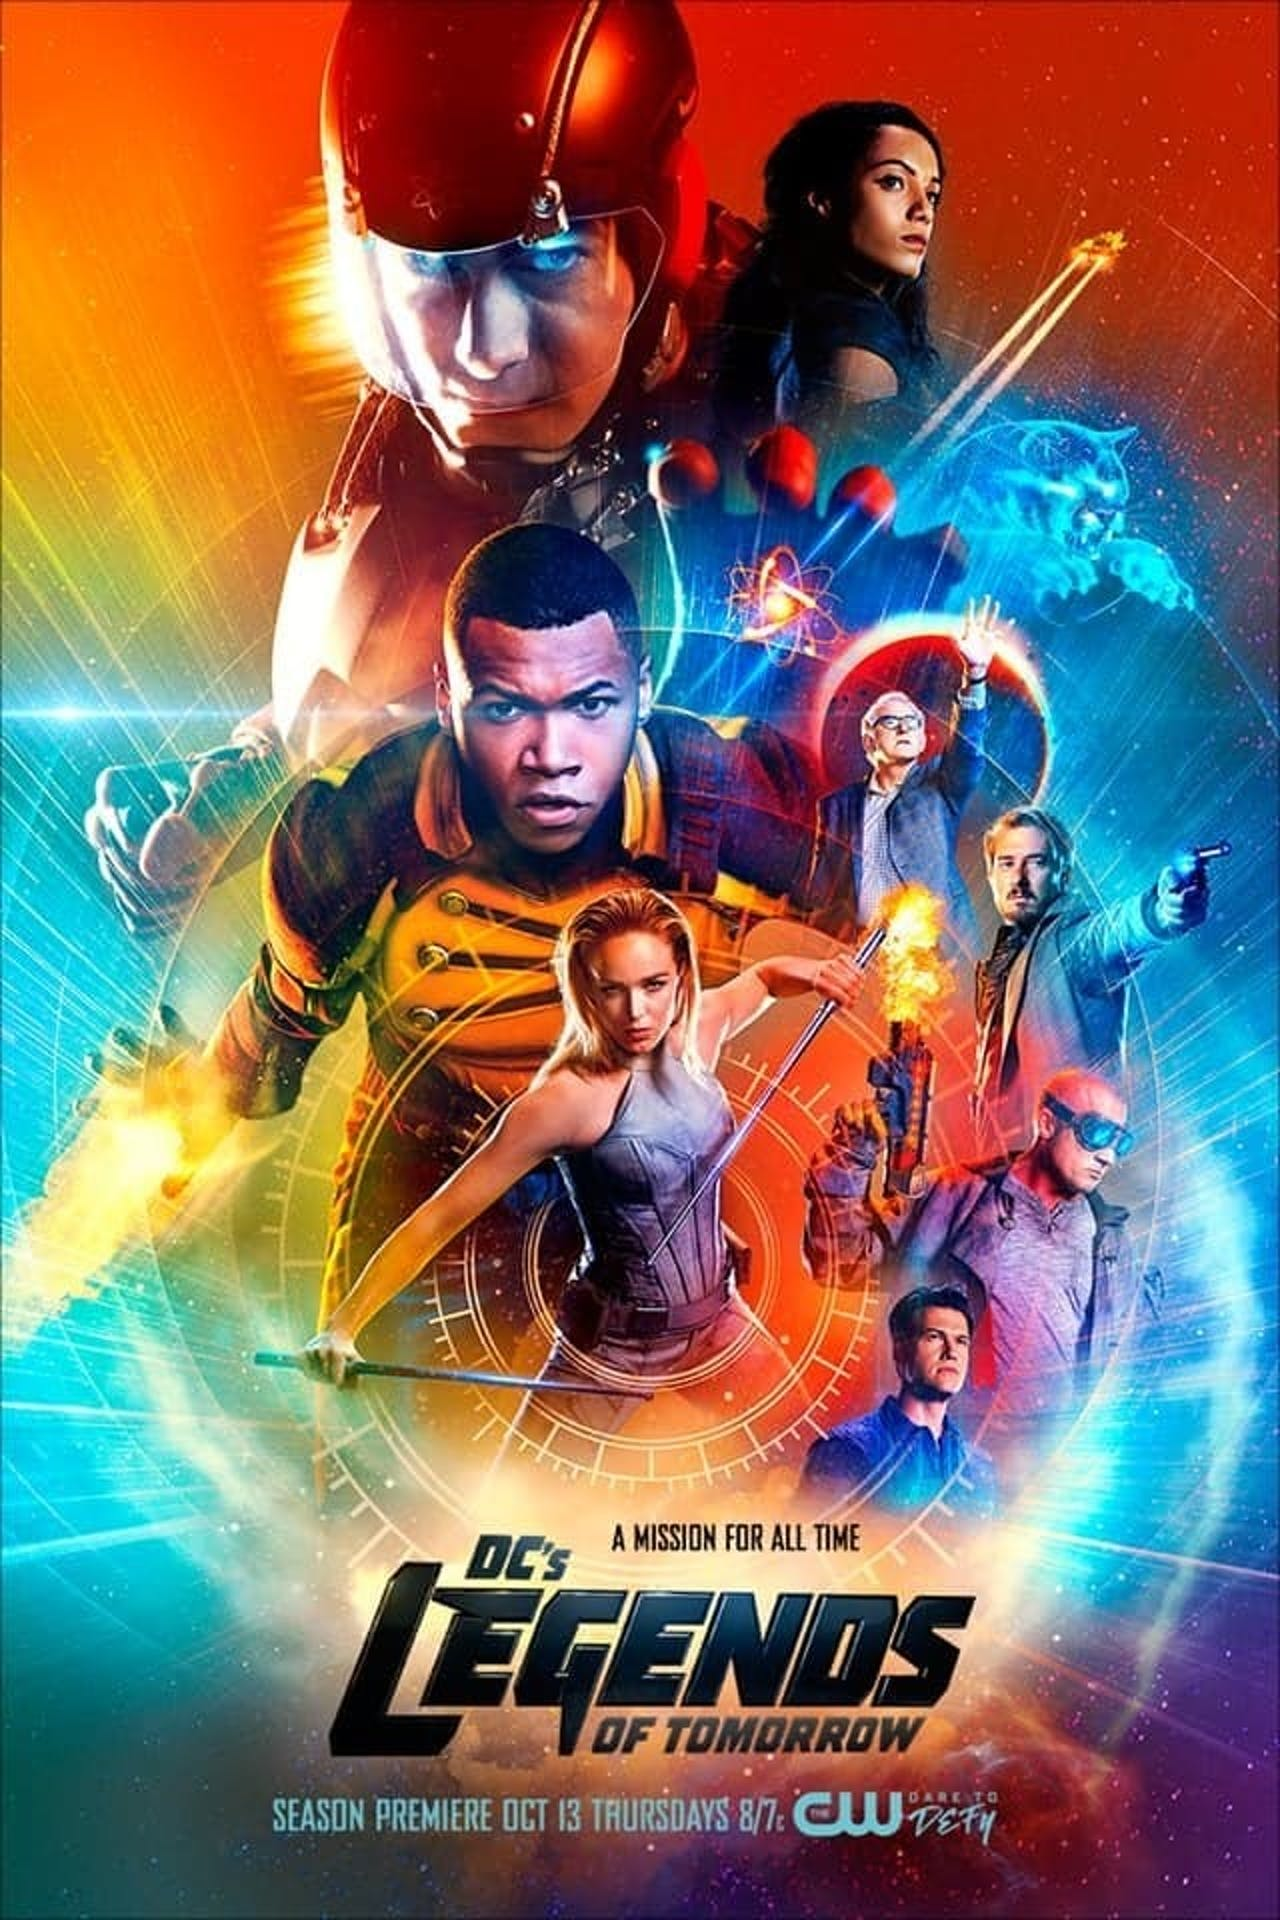 Season 2 Poster of CW Legends of Tomorrow which feature Vixen and Citizen Steel